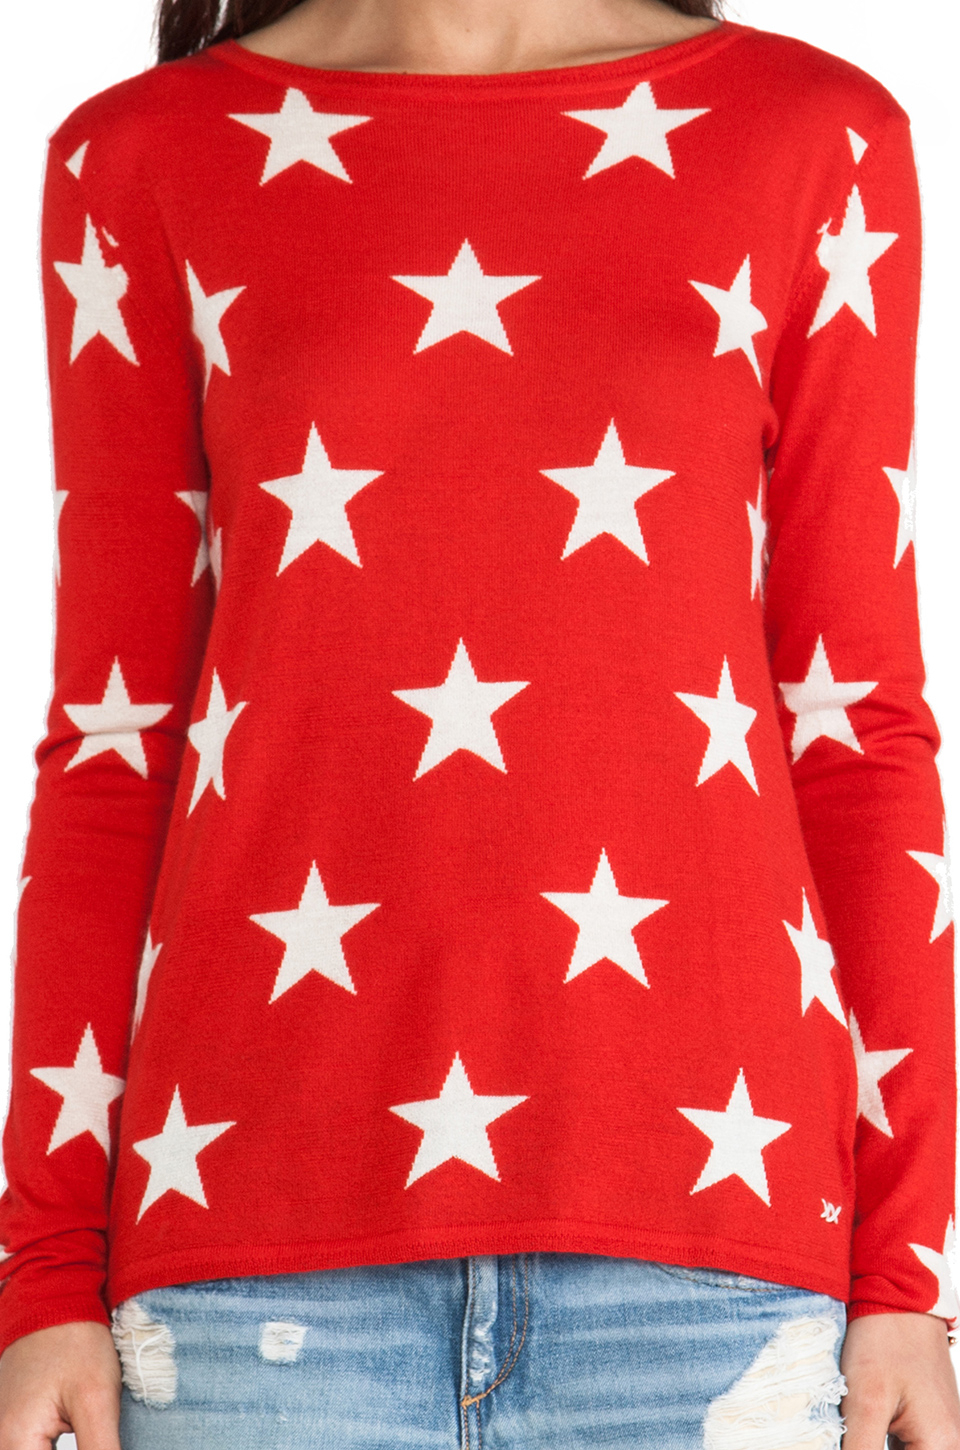 Banjo & matilda Star Crew Sweater in Red | Lyst